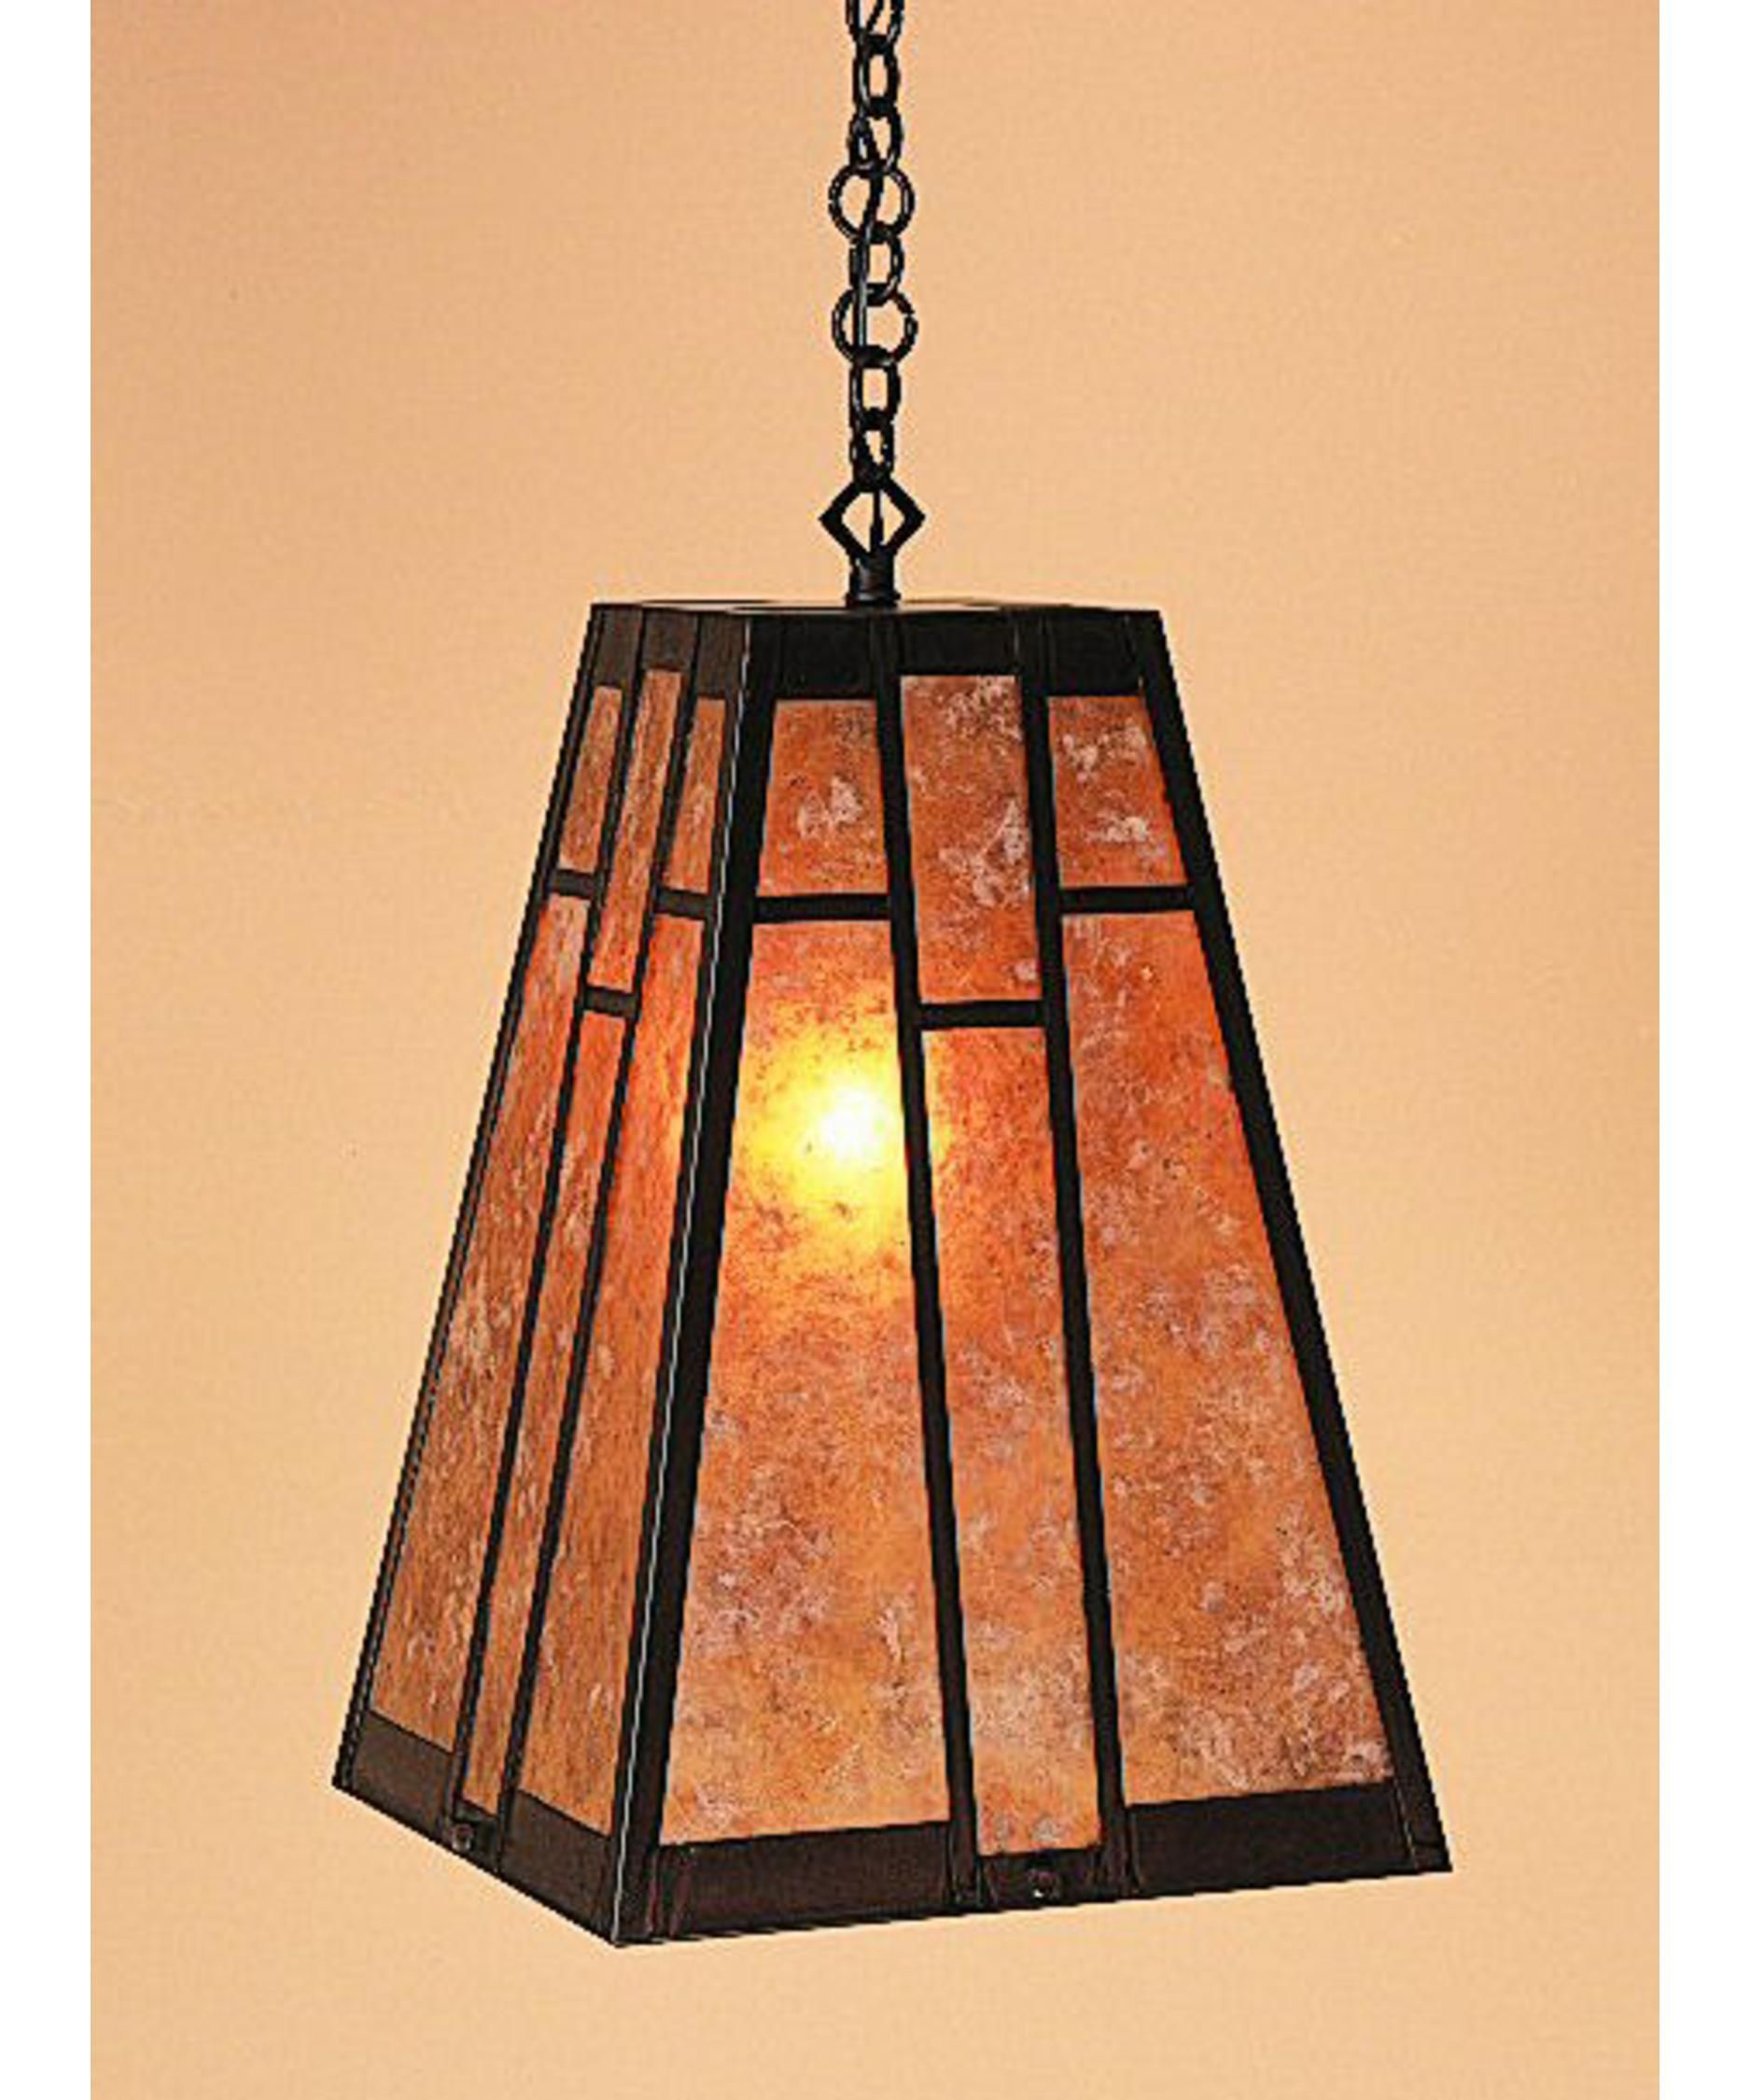 fixture pendant with mission com style chloe shade ceiling tiffany dp amazon light lighting grace inch inverted geometric